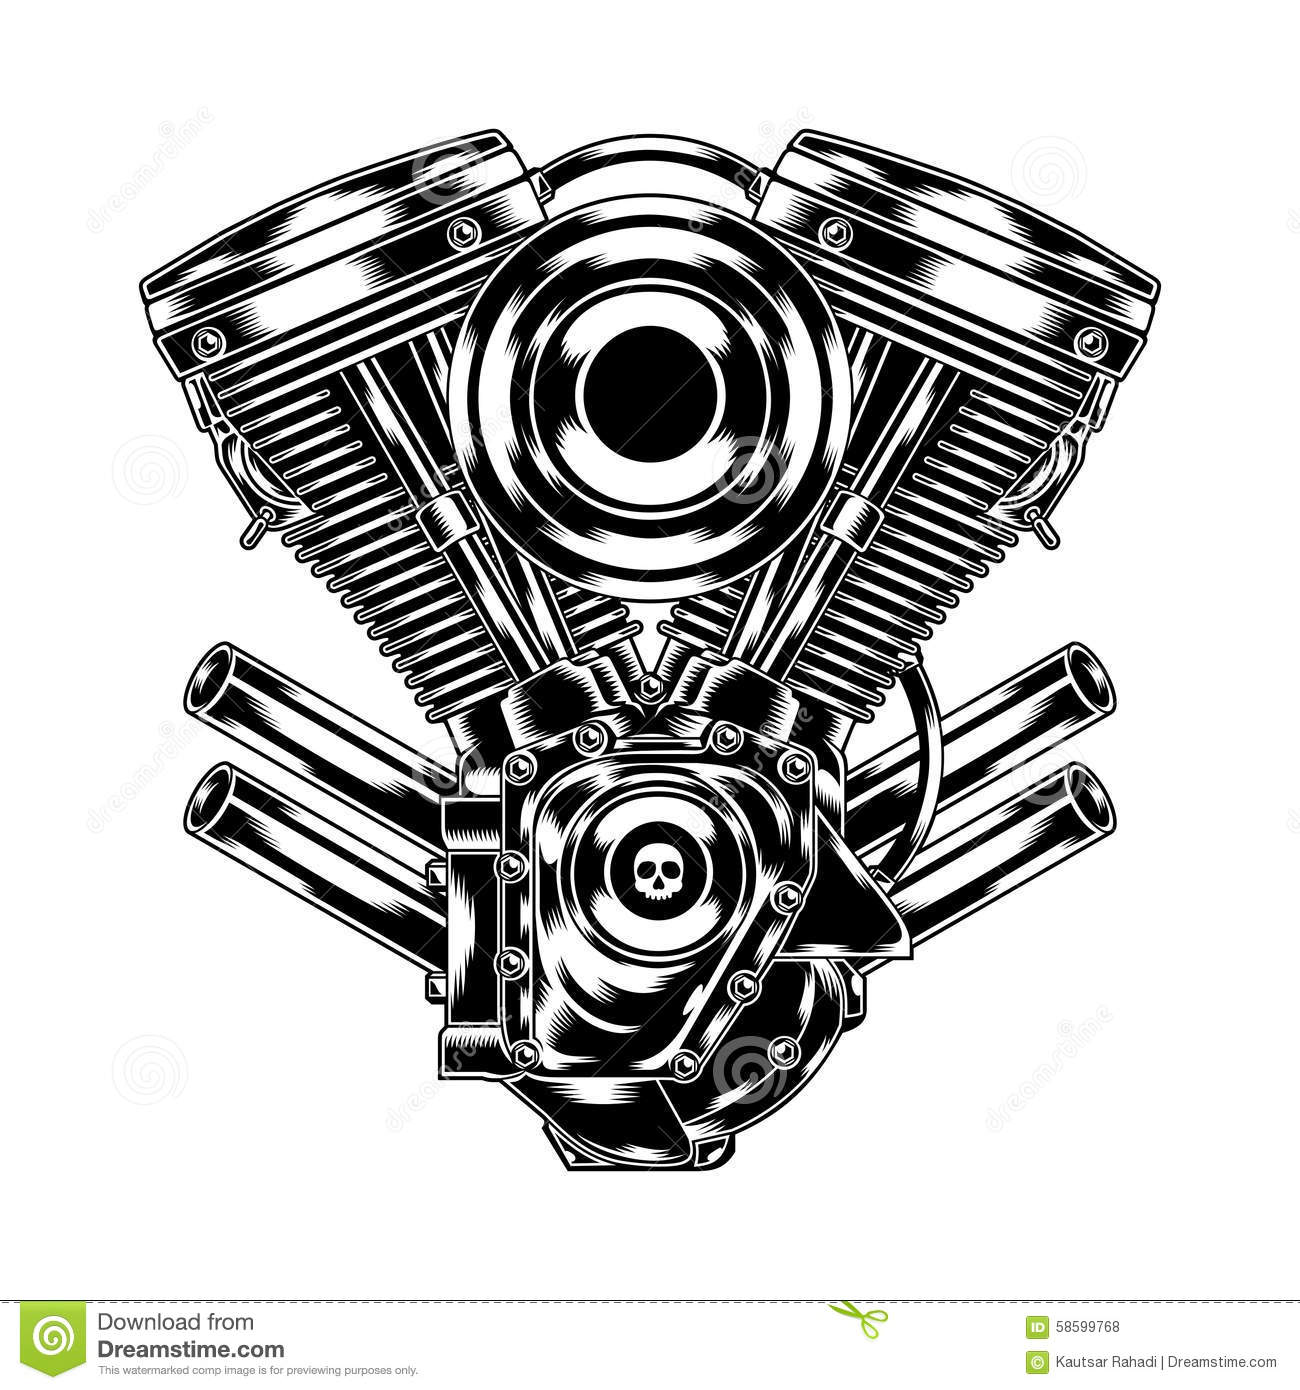 Motorcycle Engine Stock Vector Illustration Of Motorbike